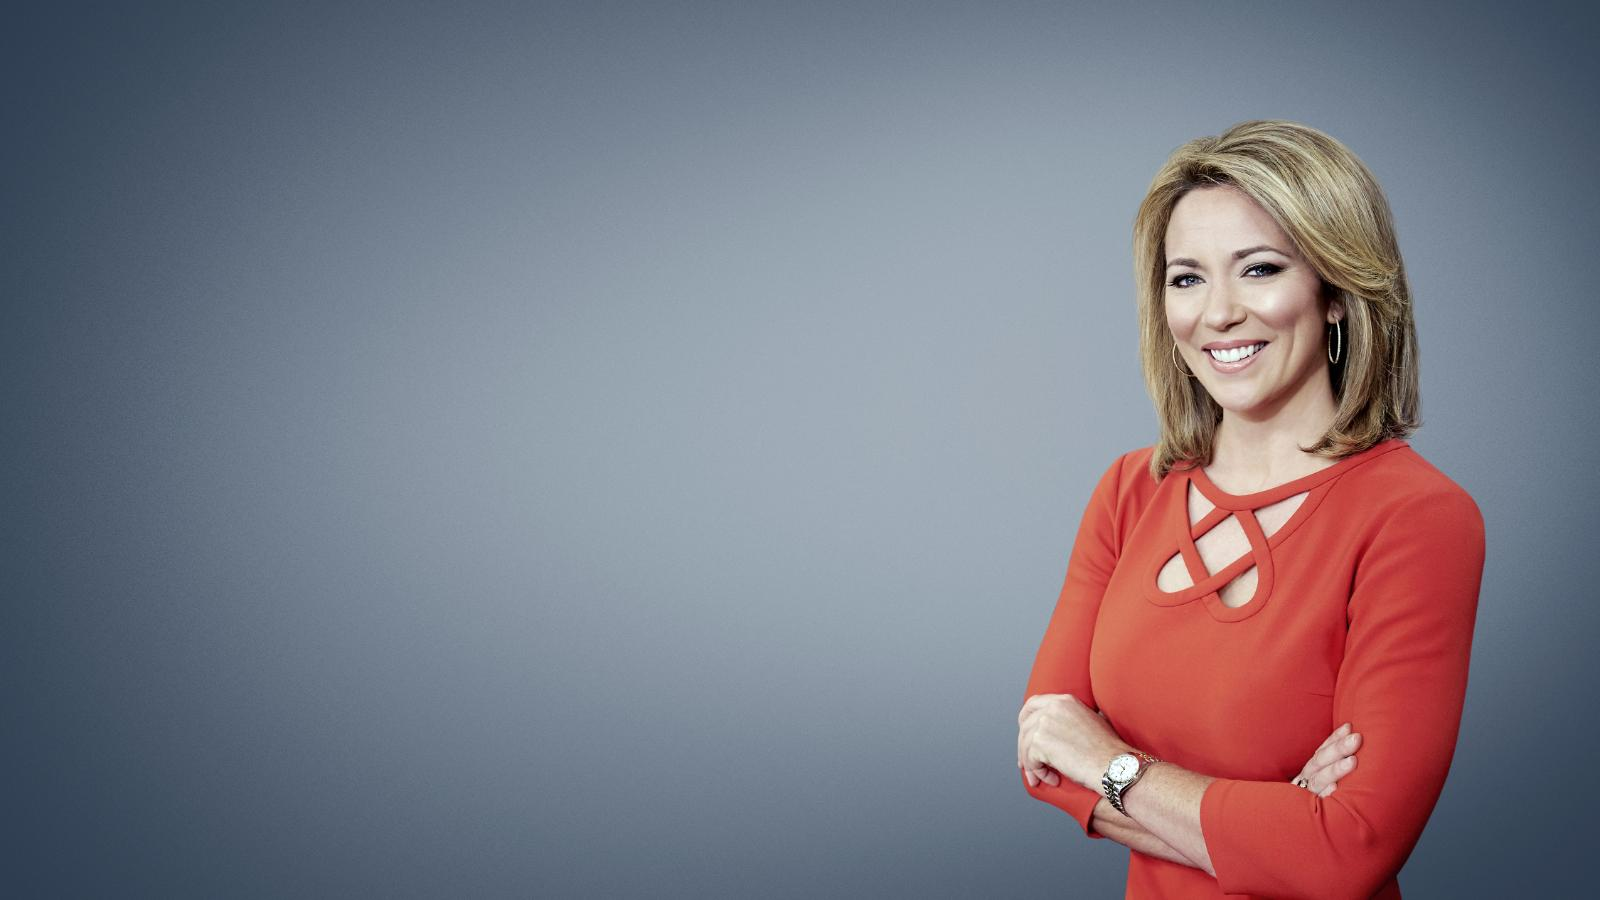 CNN Profiles - Brooke Baldwin - Anchor - CNN - photo#27